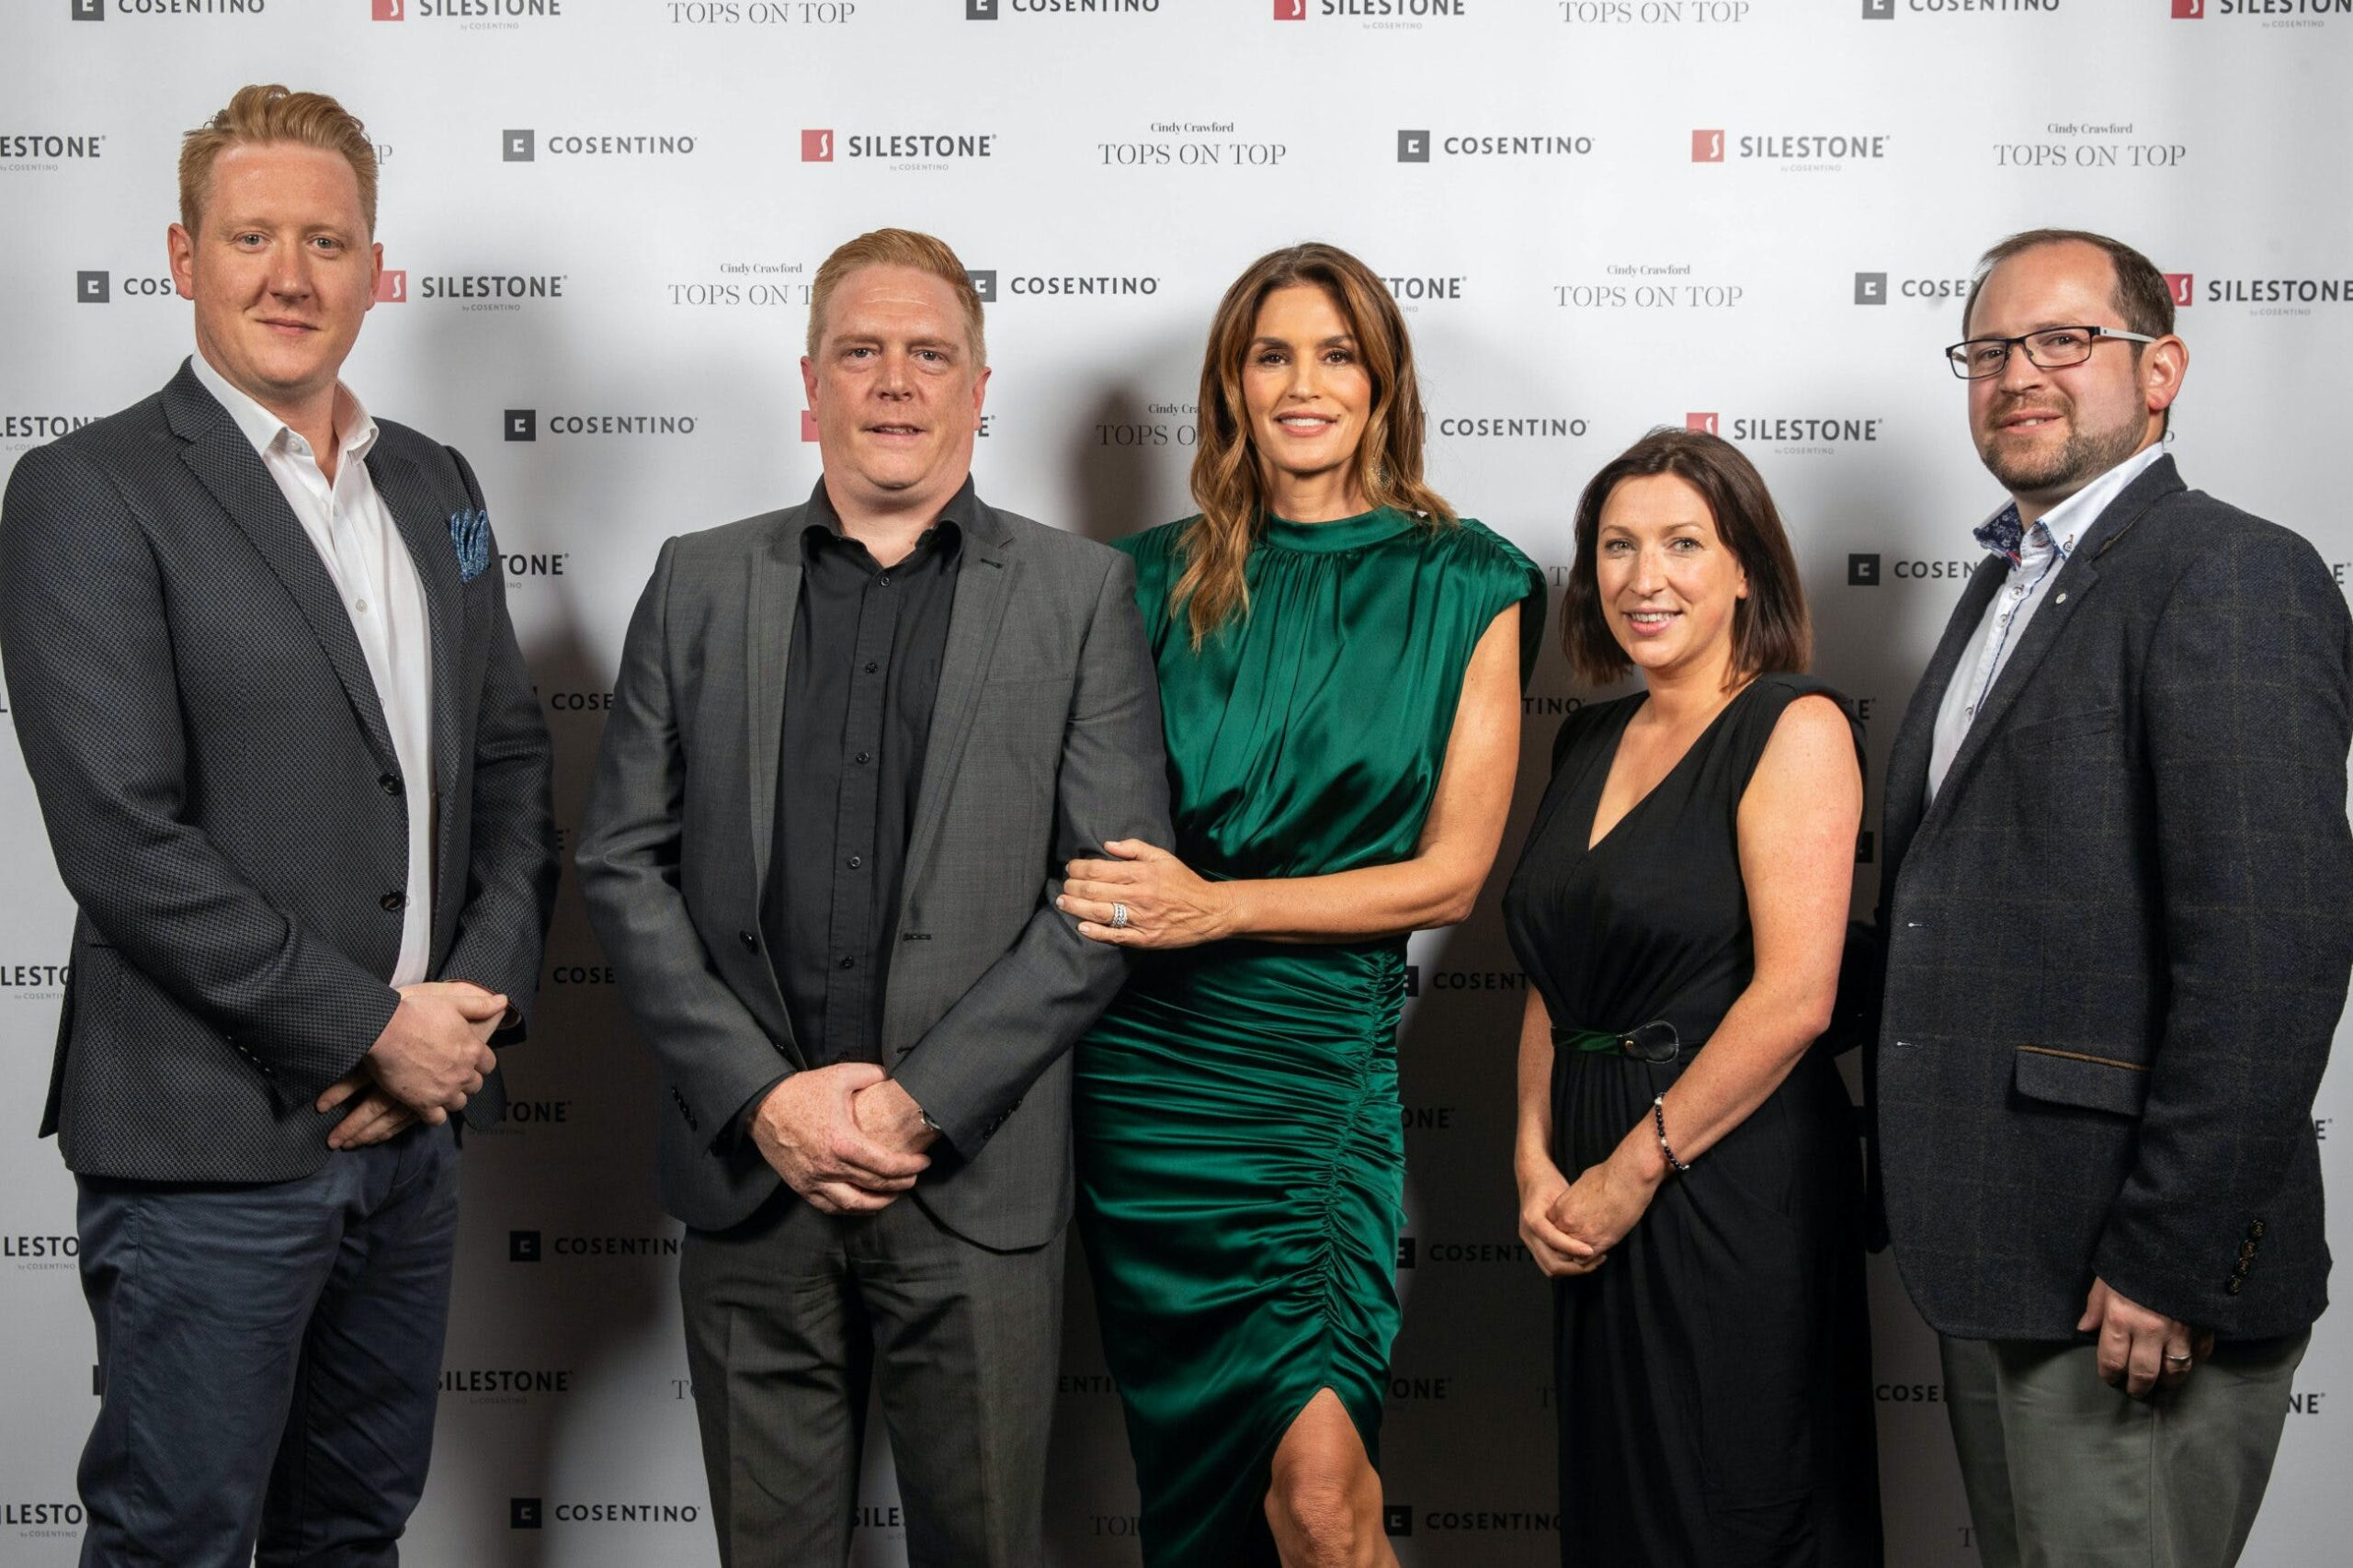 """Image of Christopher Hay Brett Wallace Cindy Crawford Laura Davie Ross Stewart Silestone London 3 scaled in Silestone® Presents its New """"Tops on Top 2019"""" Campaign Featuring Cindy Crawford - Cosentino"""